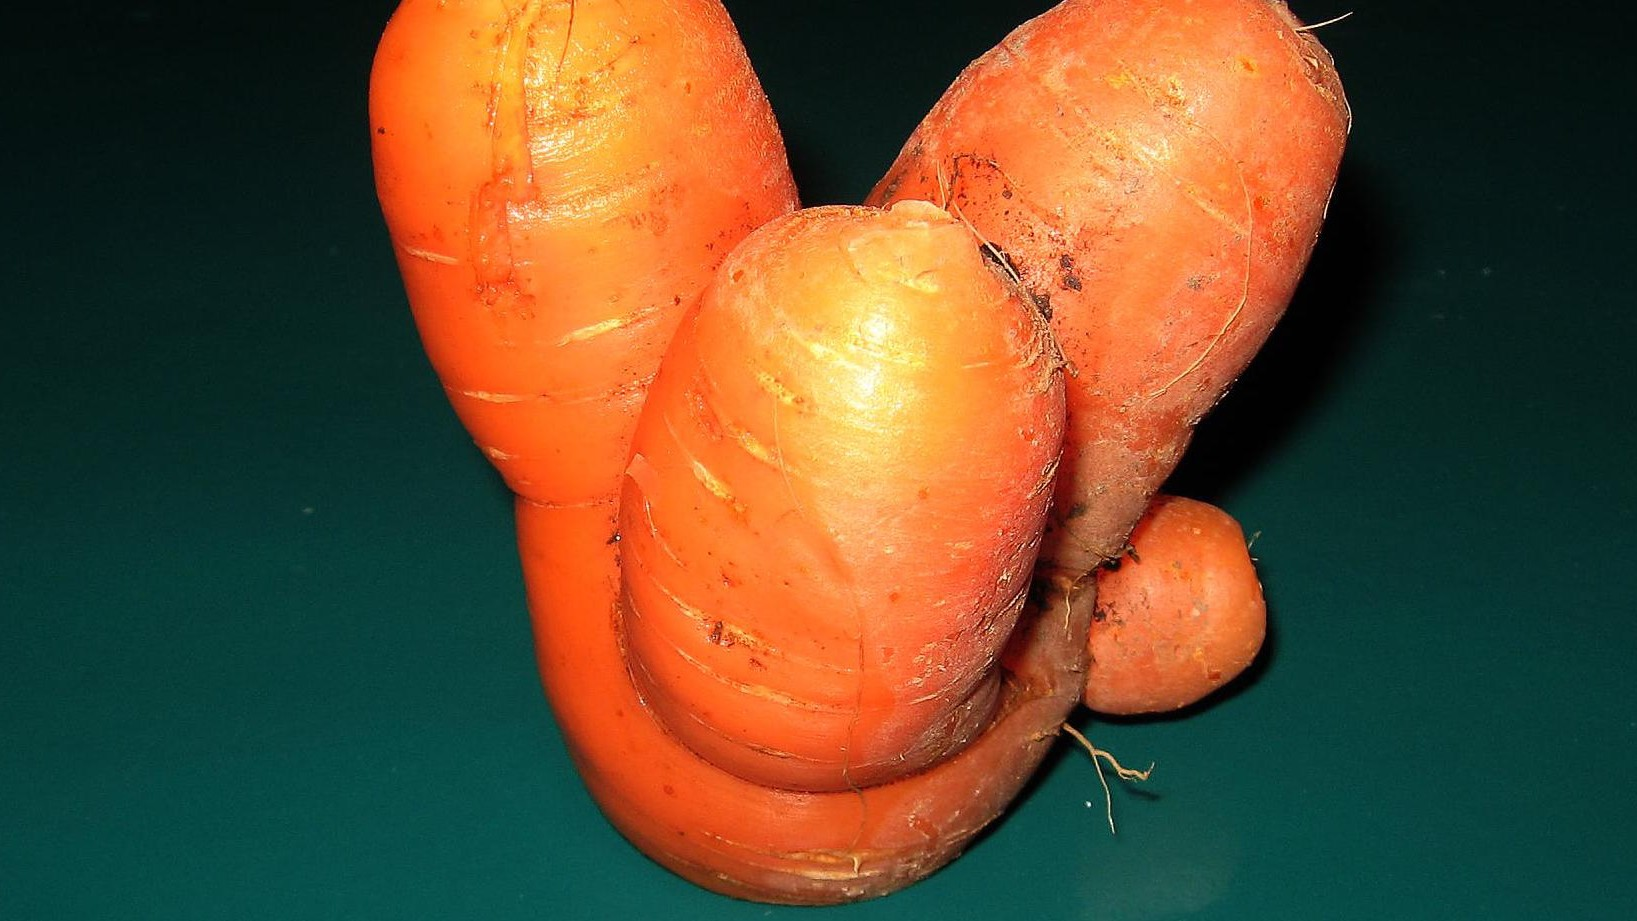 Quebec Finally Got Rid of Its Bizarre Ban on Selling Ugly Fruit